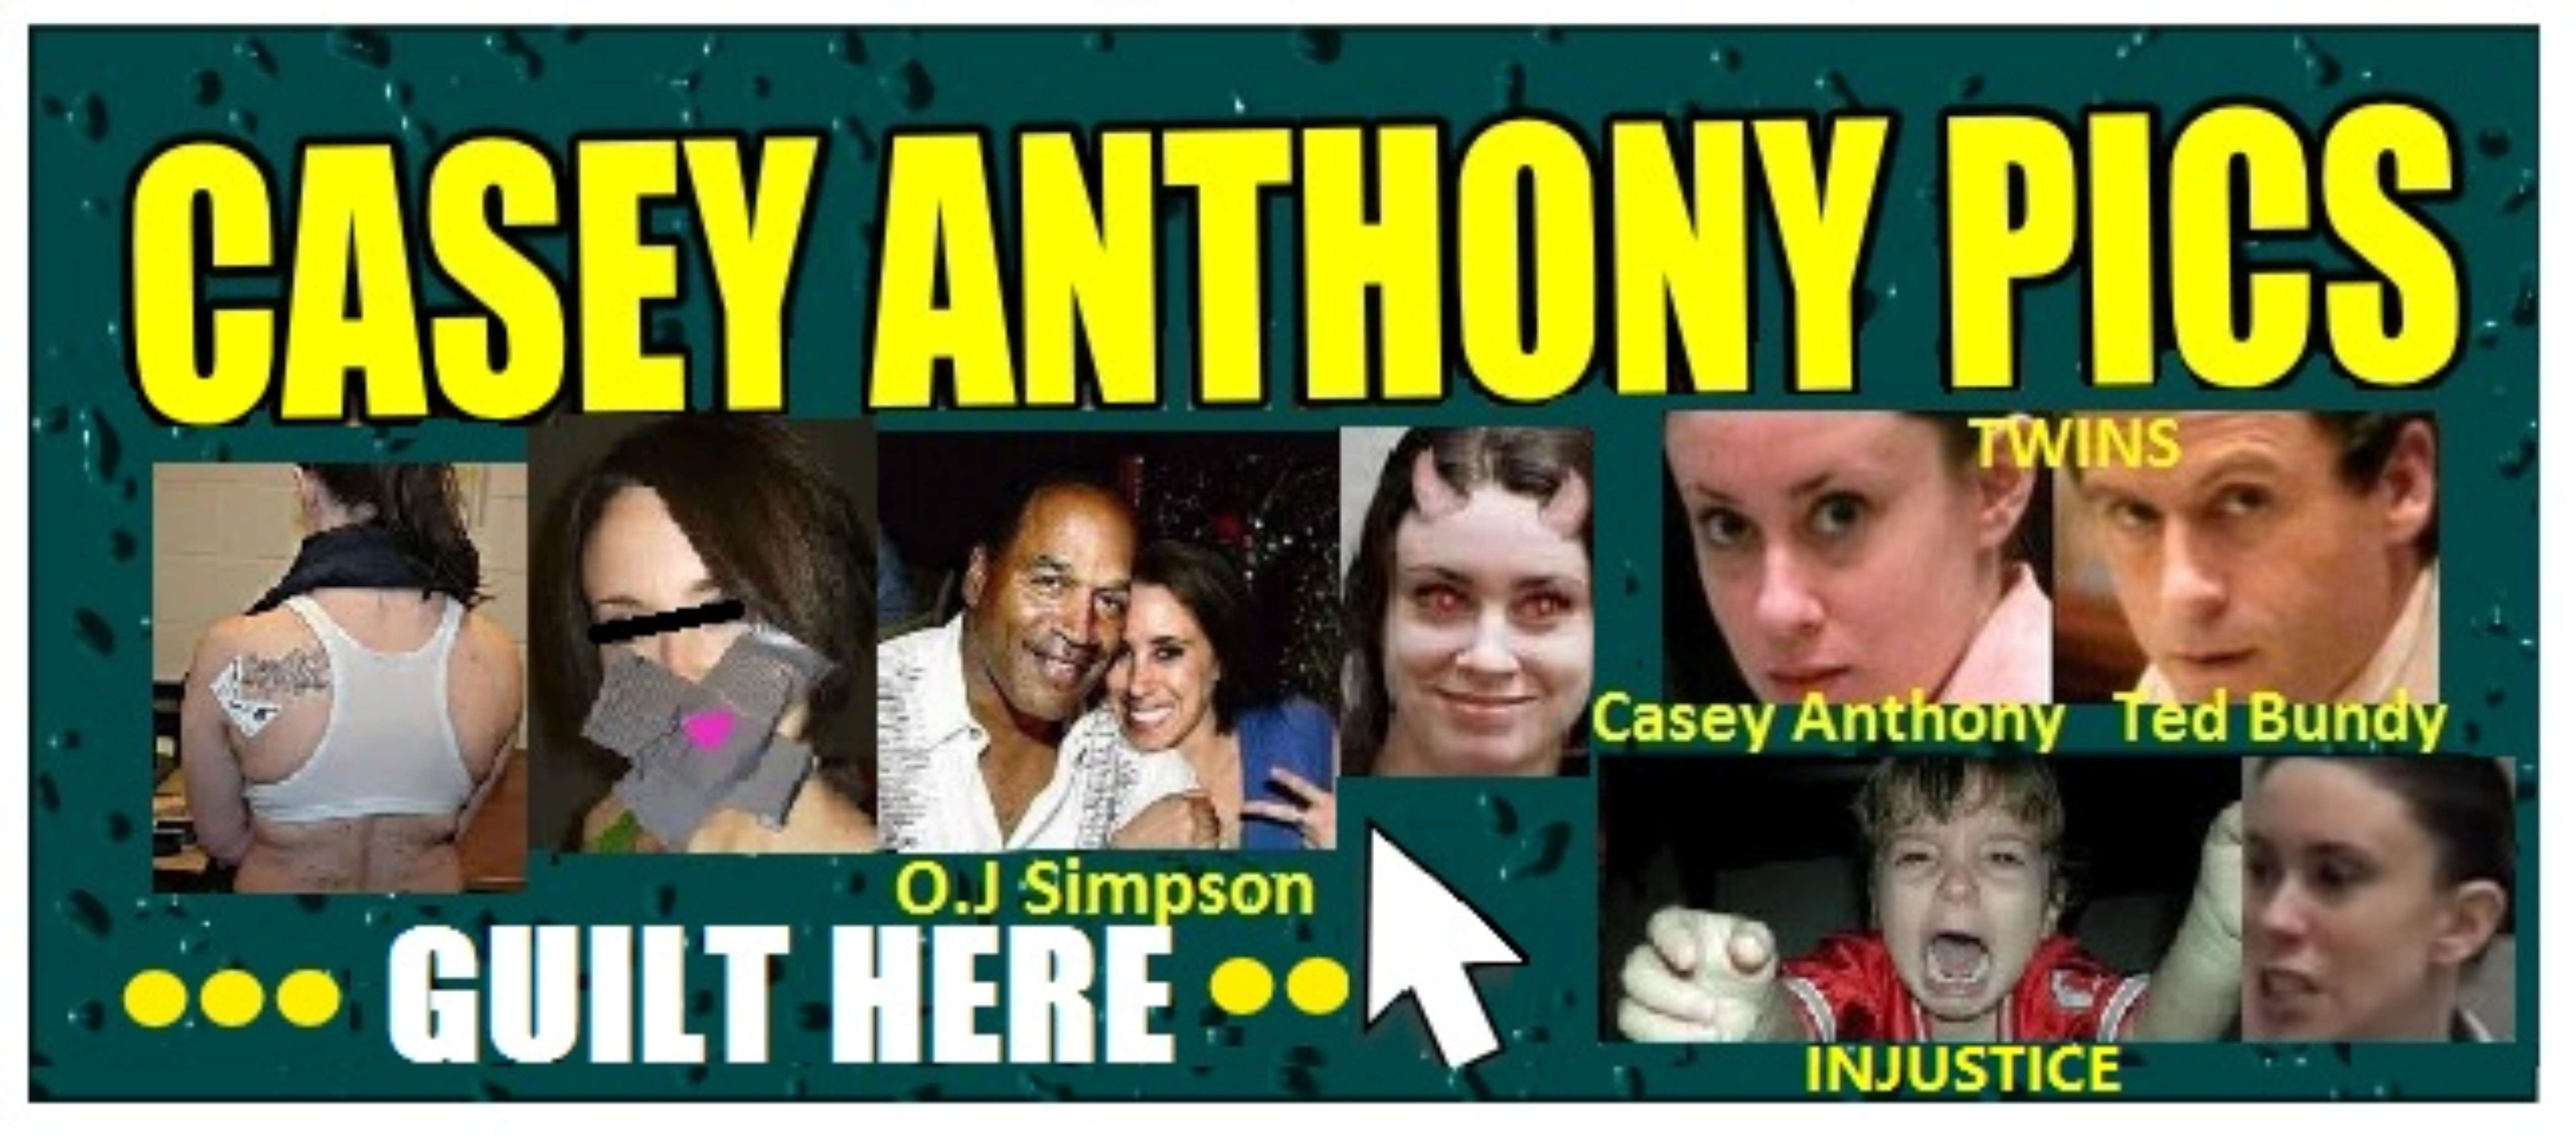 bd2 casey anthony casey anthony trial know your meme,Casey Anthony Memes